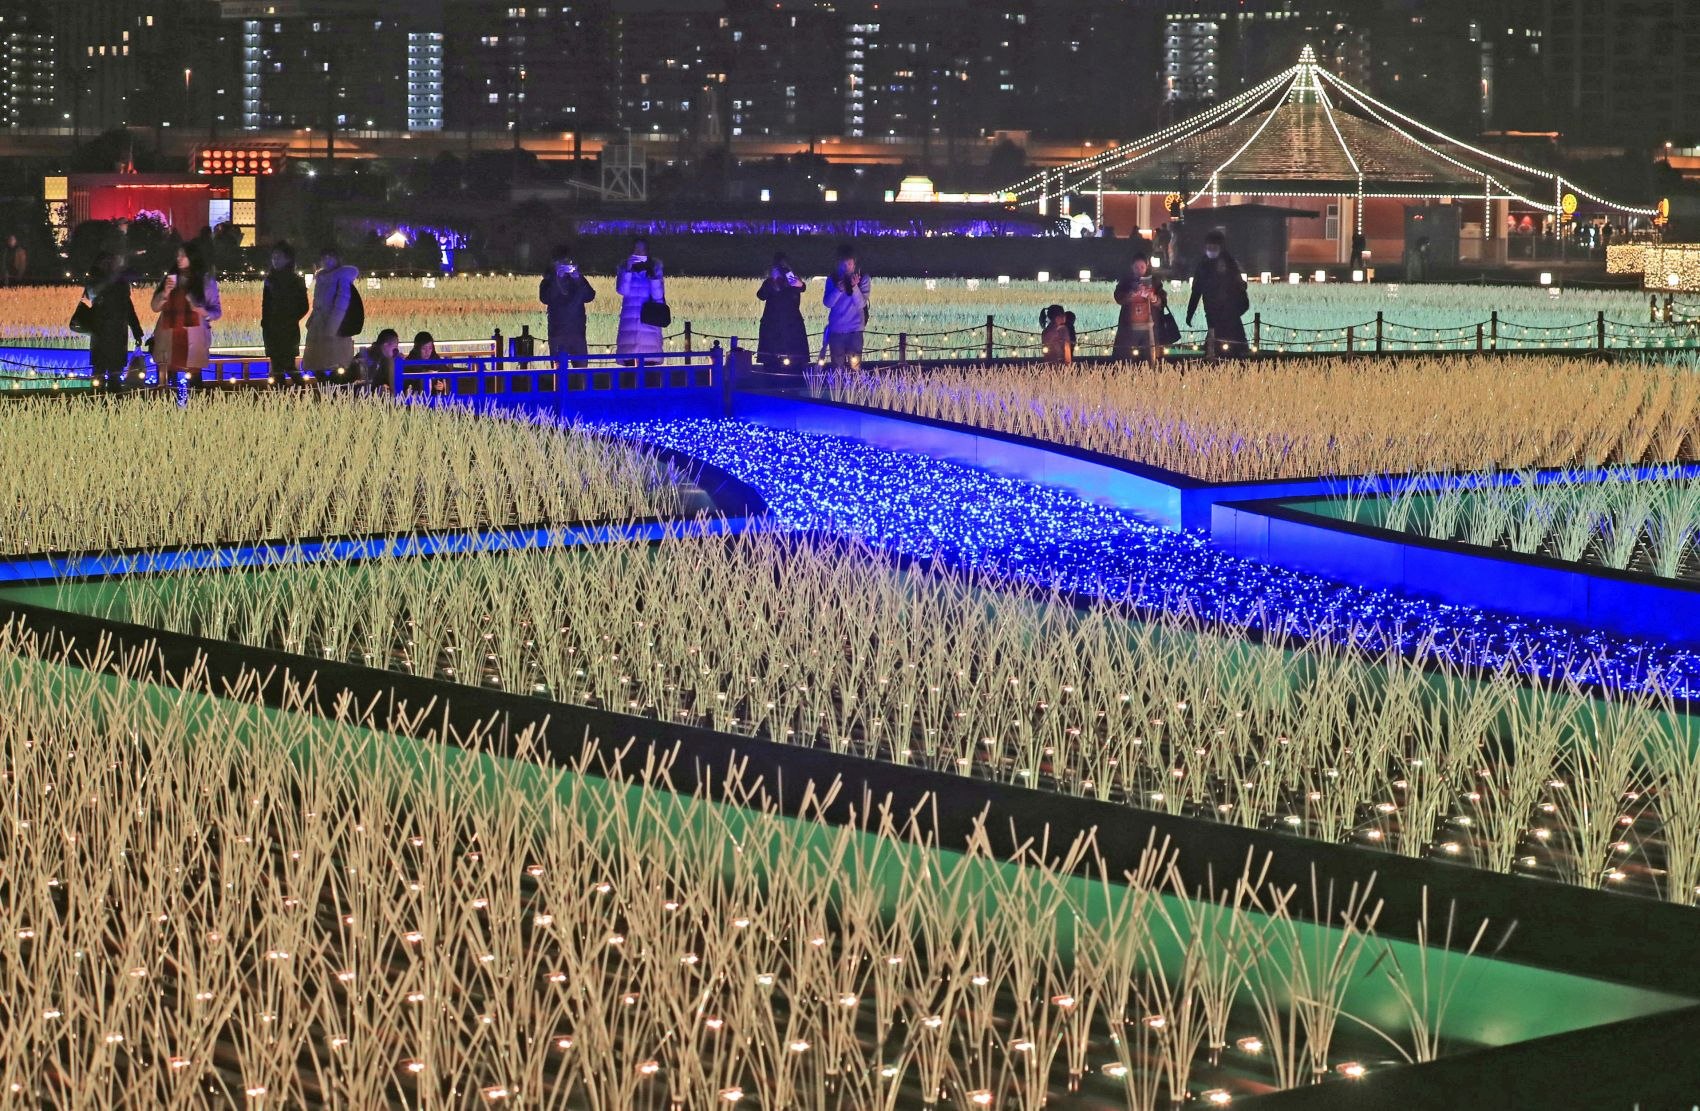 Tokyo Mega Illumination: 'Oi Racecourse' Dazzles With Unusual Light Installation